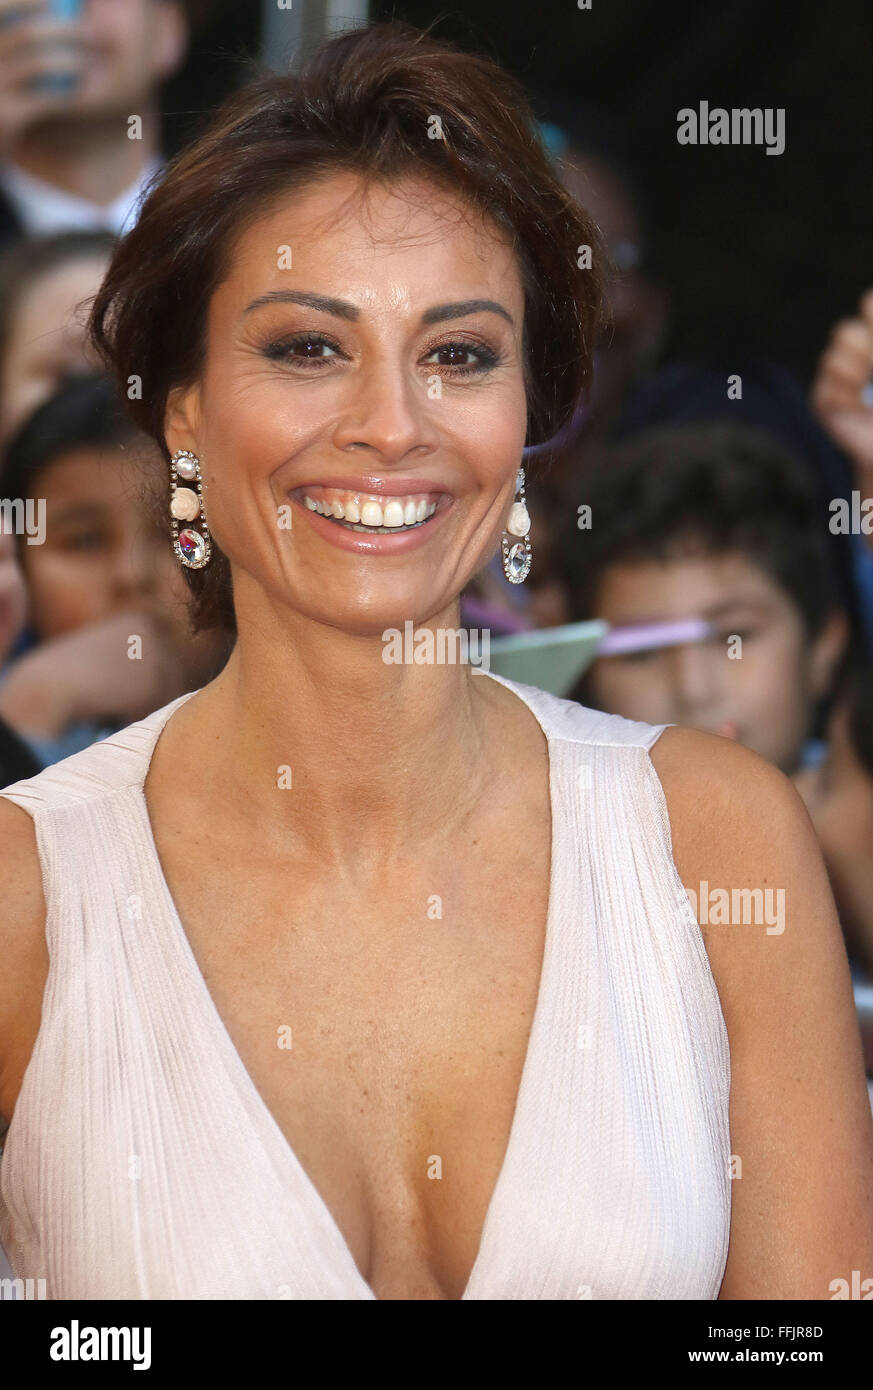 Young Melanie Sykes nude (33 foto and video), Topless, Hot, Feet, cleavage 2018